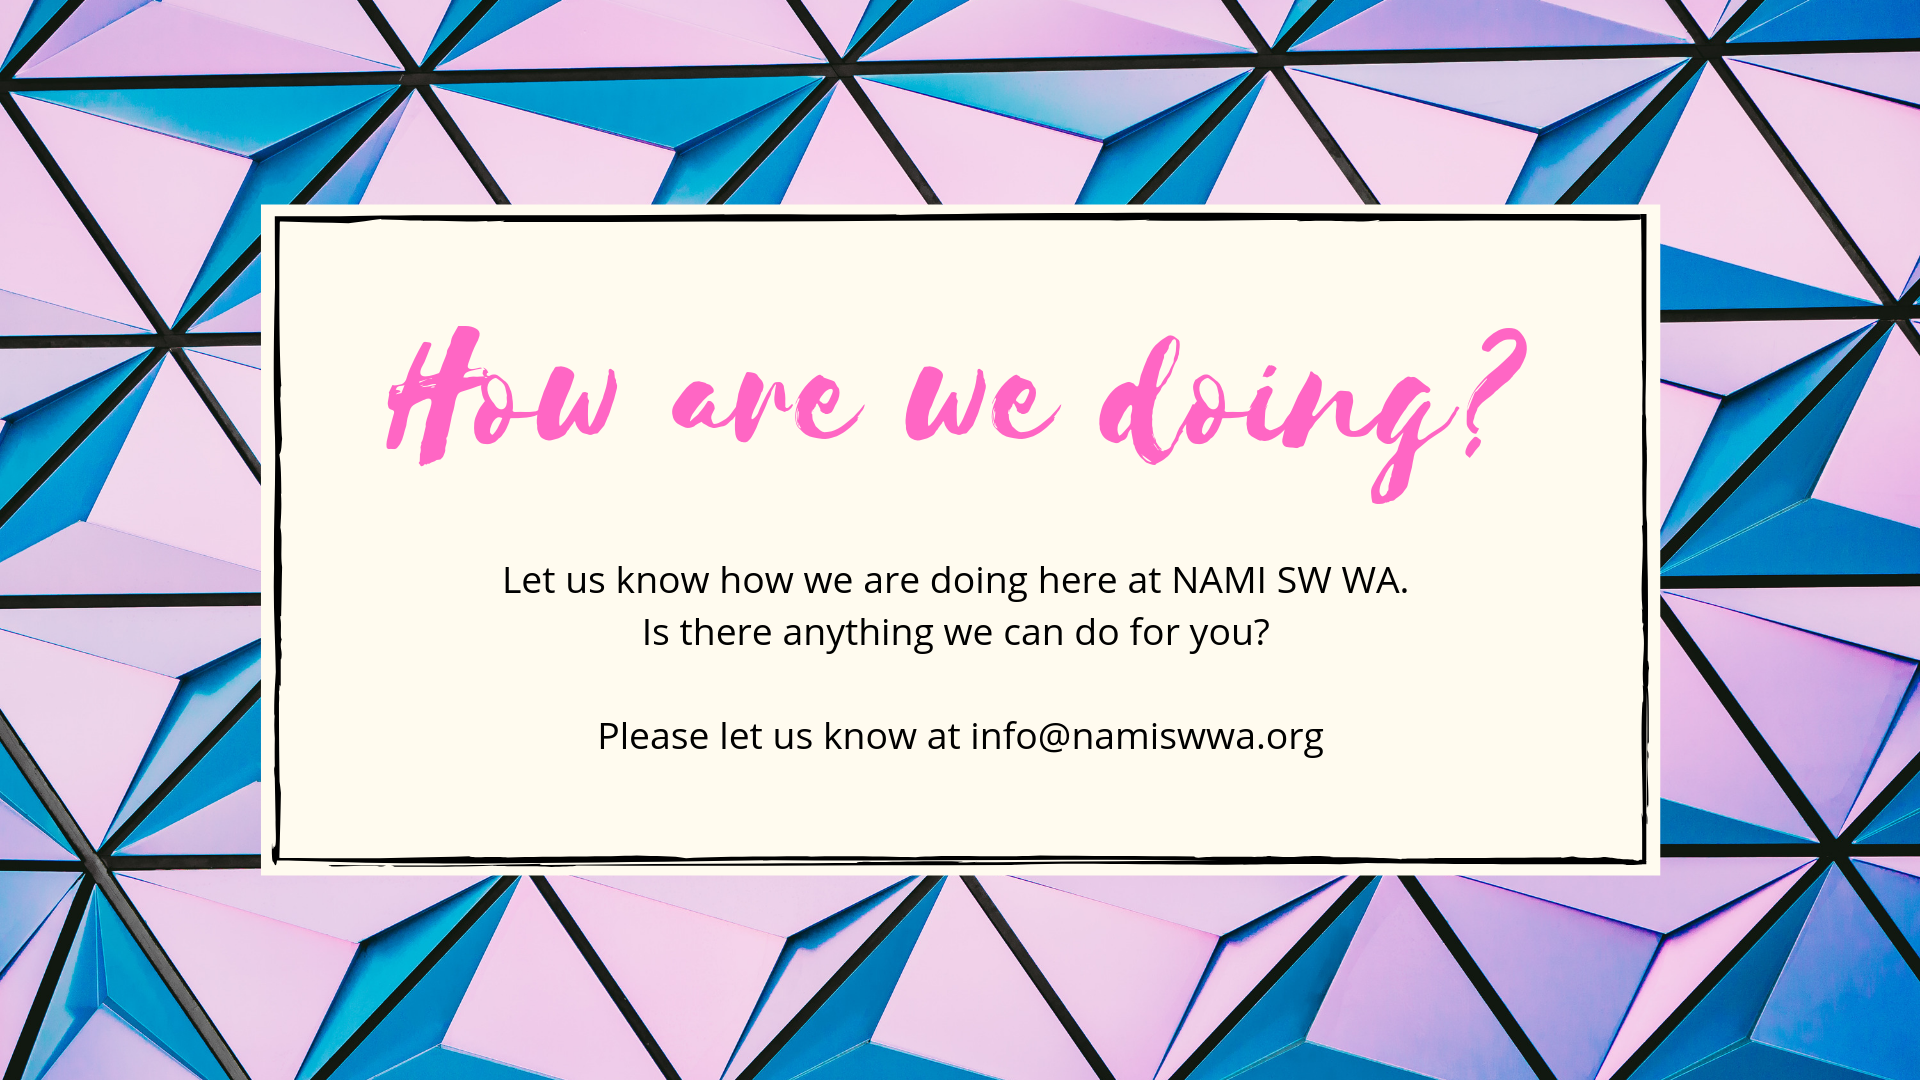 How are we doing graphic, email infor@namiswwa.org to give feedback